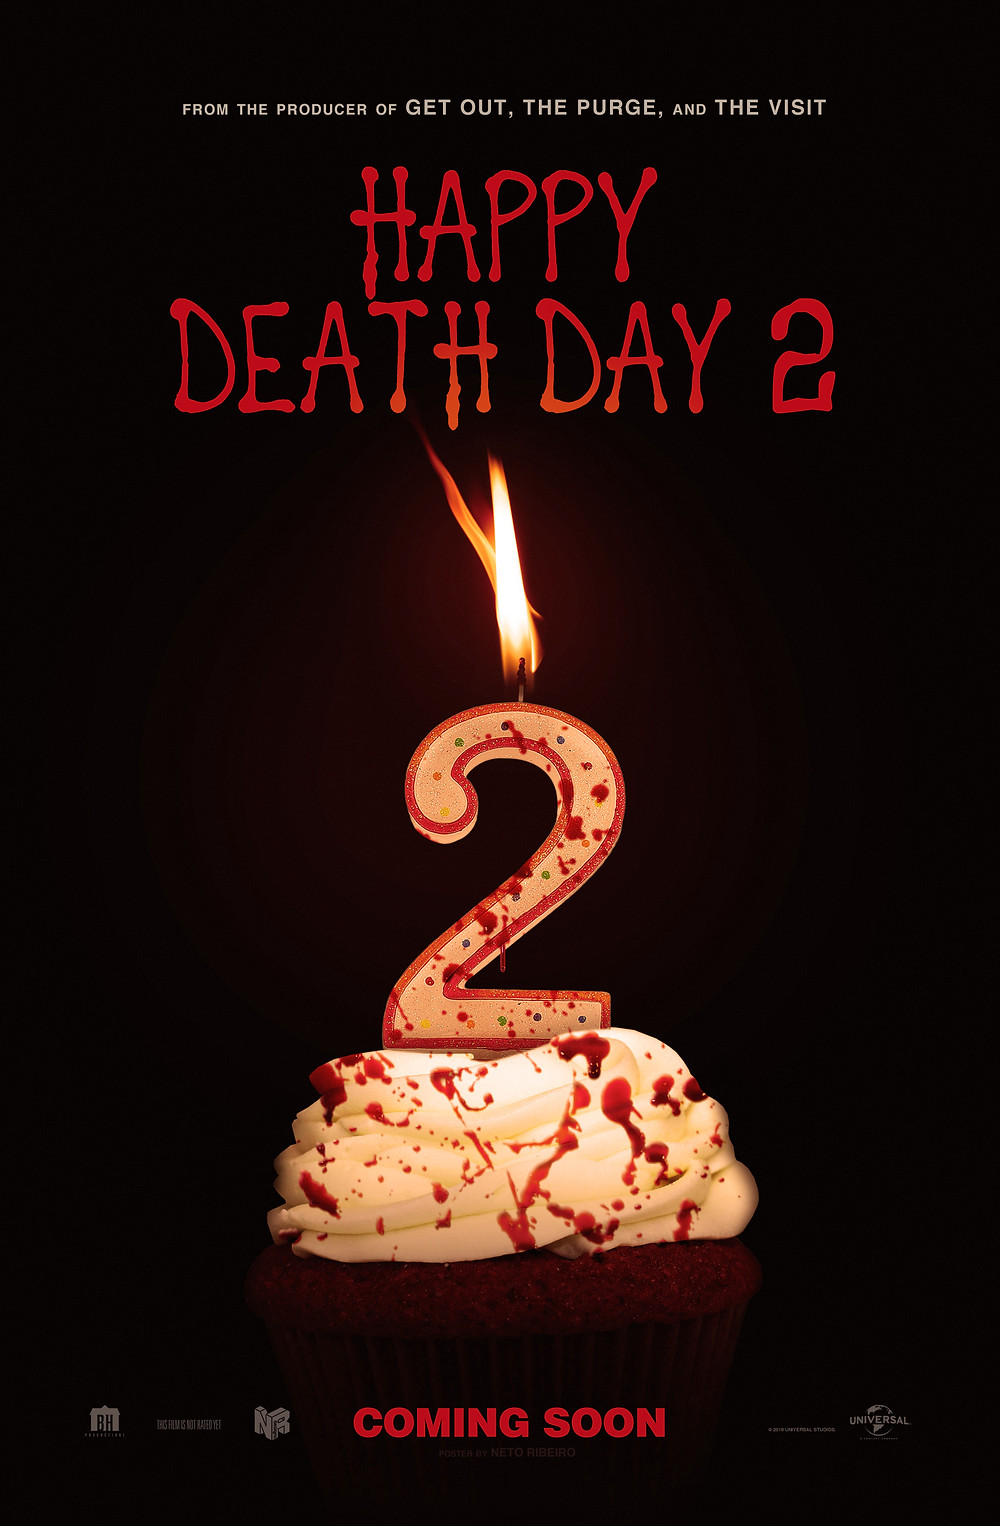 Happy Death day 2 & Alloy Tracks